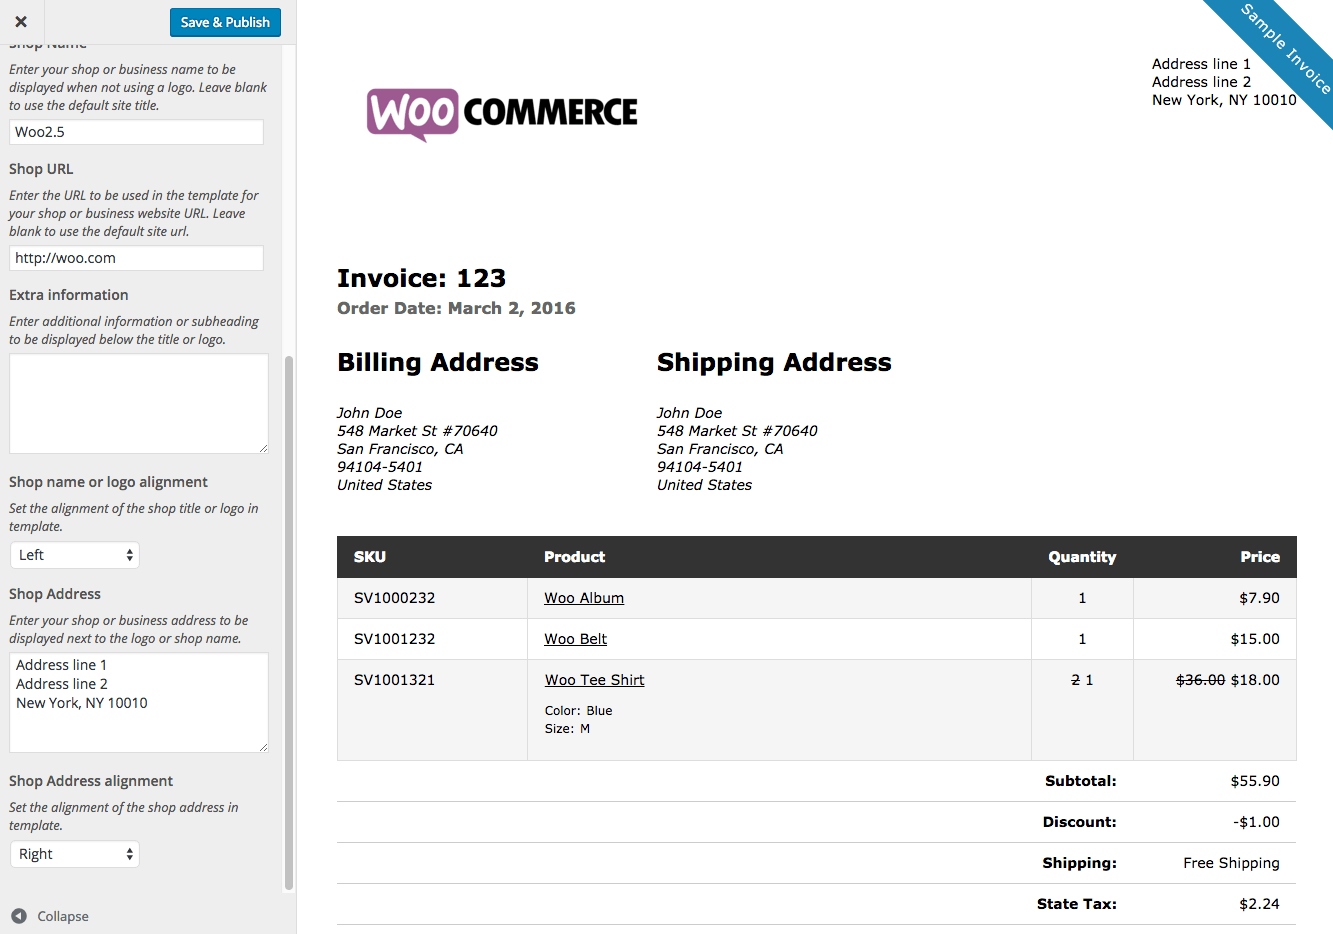 Maidofhonortoastus  Pleasing Woocommerce Print Invoices Amp Packing Lists  Woocommerce Docs With Likable Woocommerce Print Invoices  Packing Lists Customizer With Cute Receipt Of Payment Sample Also Receipt Software For Small Business In Addition Earnest Money Deposit Receipt And Brother Receipt Printer As Well As Gross Receipts Tax Los Angeles Additionally Mojito Receipt From Docswoocommercecom With Maidofhonortoastus  Likable Woocommerce Print Invoices Amp Packing Lists  Woocommerce Docs With Cute Woocommerce Print Invoices  Packing Lists Customizer And Pleasing Receipt Of Payment Sample Also Receipt Software For Small Business In Addition Earnest Money Deposit Receipt From Docswoocommercecom